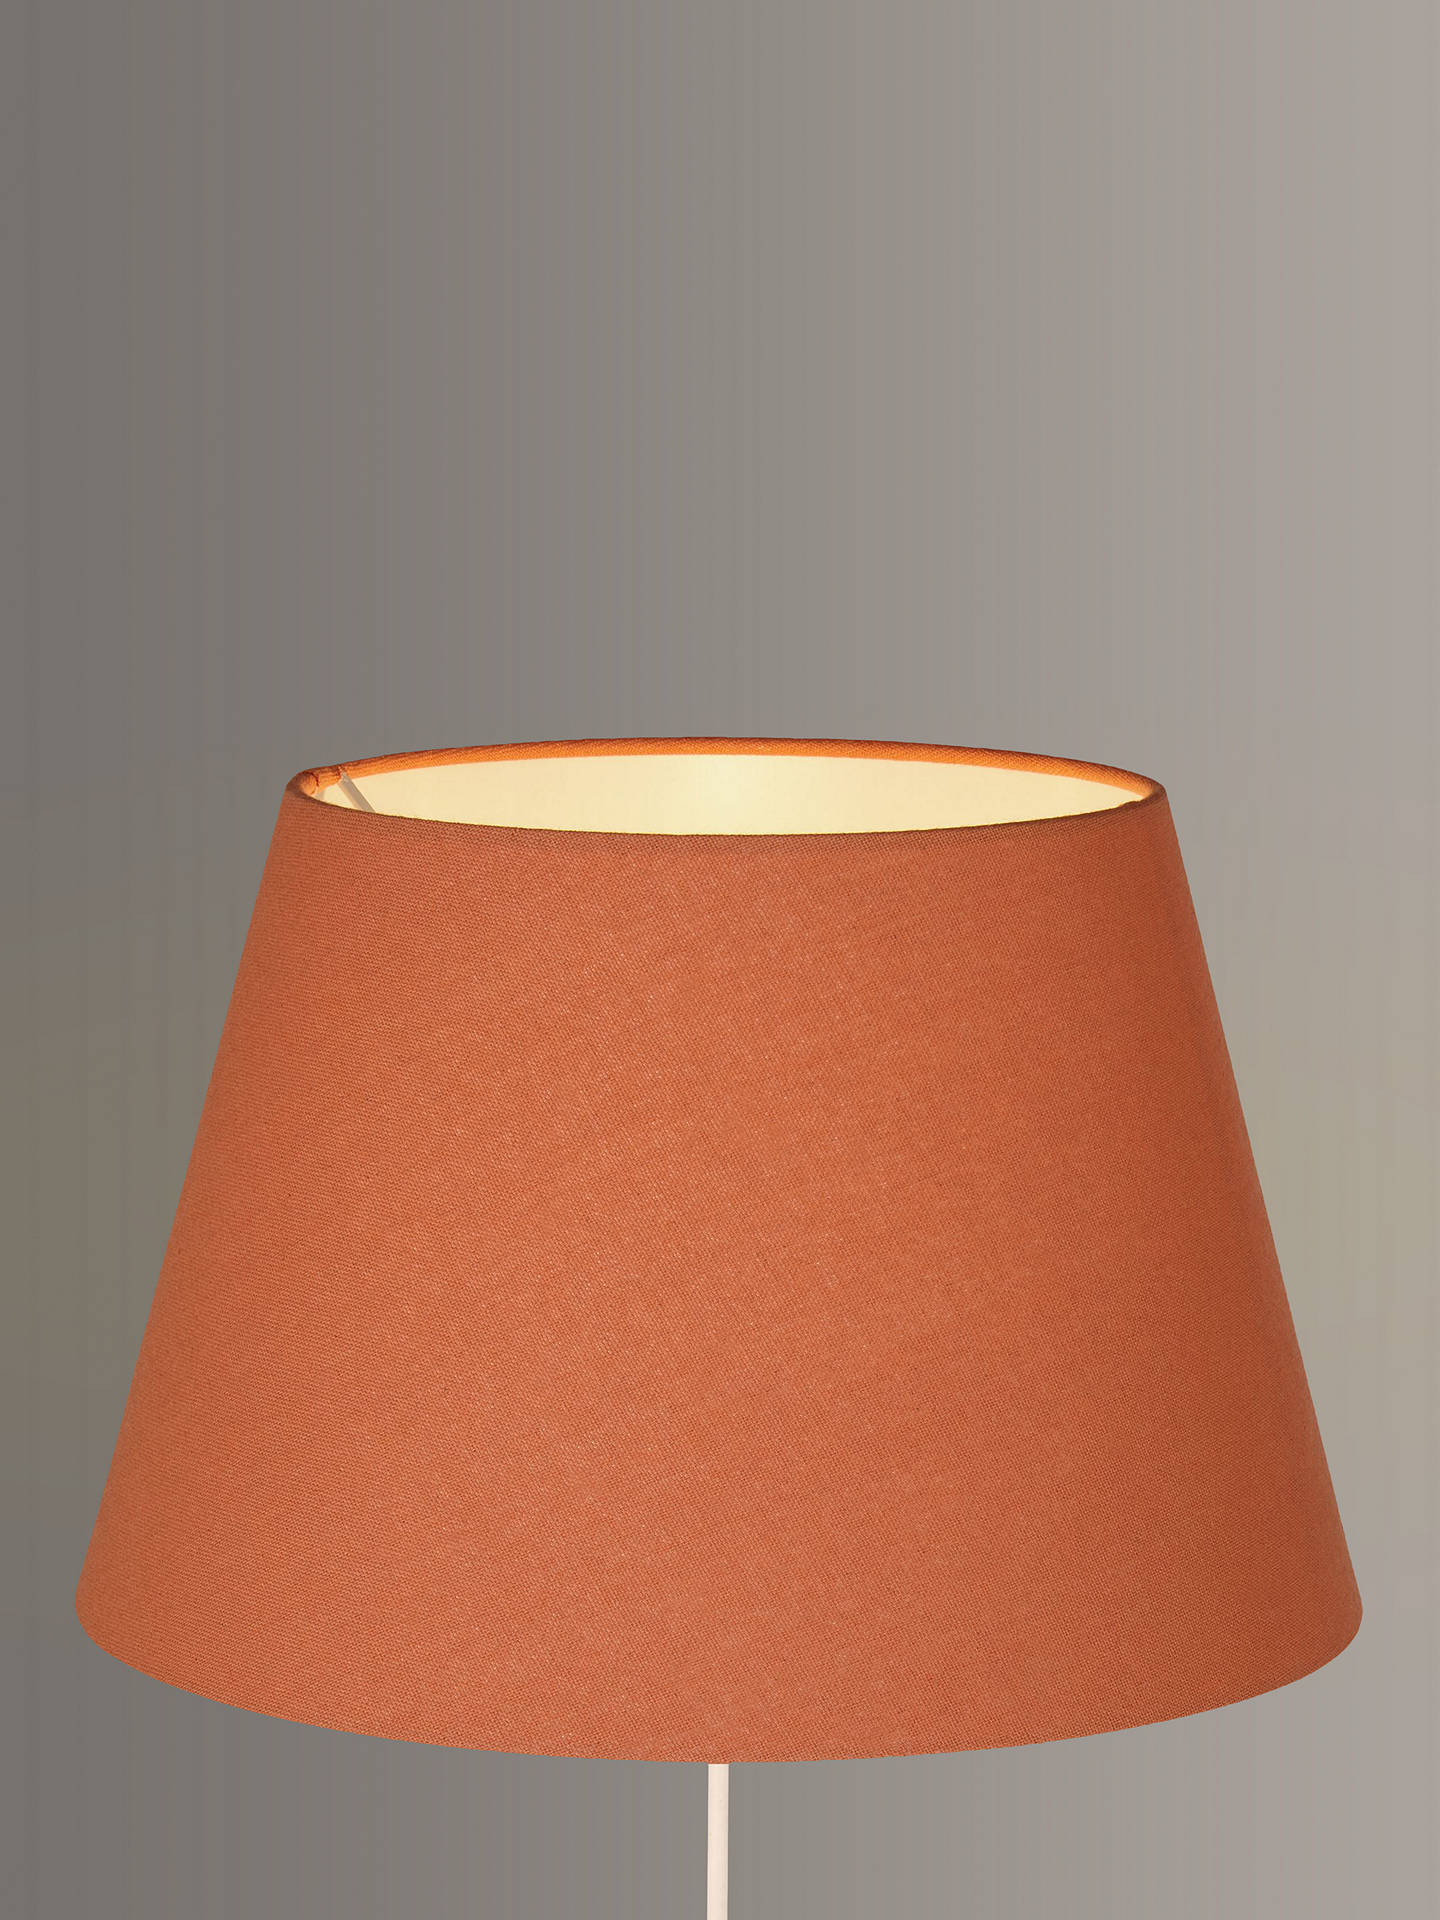 BuyJohn Lewis & Partners Chrissie Tapered Lampshade, Orange, Dia.20cm Online at johnlewis.com